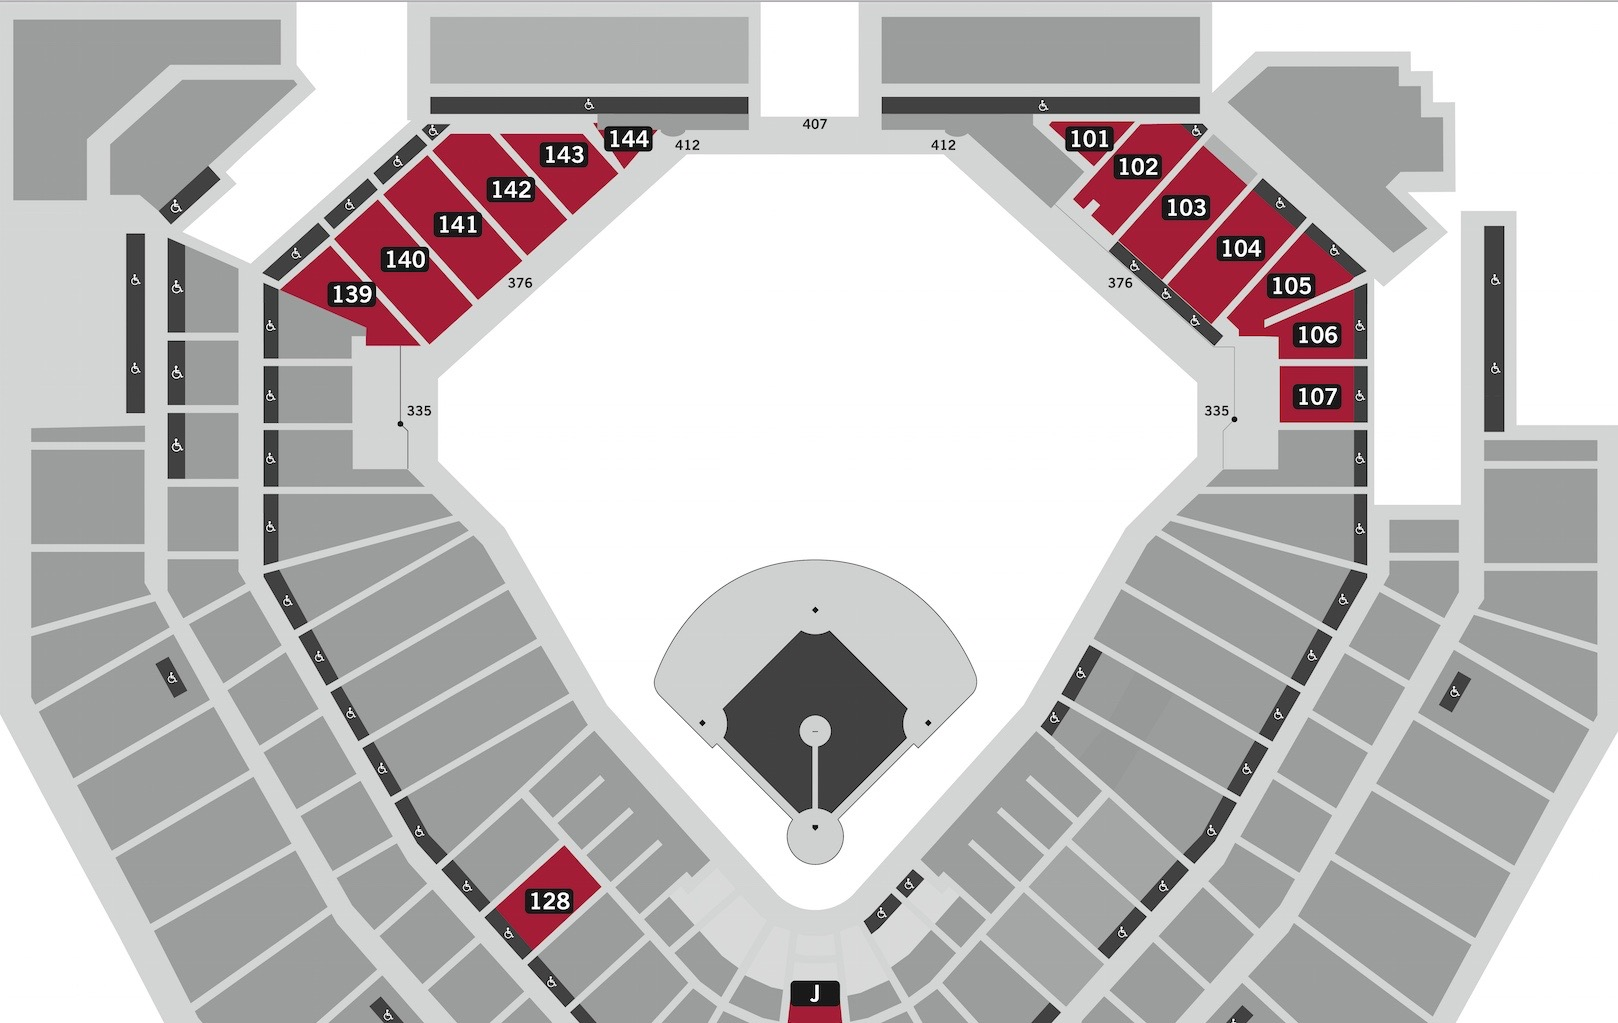 Chase Field: The Best Seats in the House on current earth magnetic field map, comerica park, rogers centre, victory field map, citi field map, coors field map, lp field map, sports authority field at mile high map, glendale arena map, petco park map, comerica theater map, gila river arena map, progressive field, at&t park, busch stadium, suntrust park map, fedex field map, citi field, coors field, faurot field map, wrigley field, o.co coliseum map, tropicana field, target field, hugoton field map, lincoln financial field map, minute maid park, pnc park, american west arena map, herberger theater map, safeco field, citizens bank park, yankee stadium, petco park, miller park, u.s. cellular field map, arizona diamondbacks, dodger stadium, marlins park,